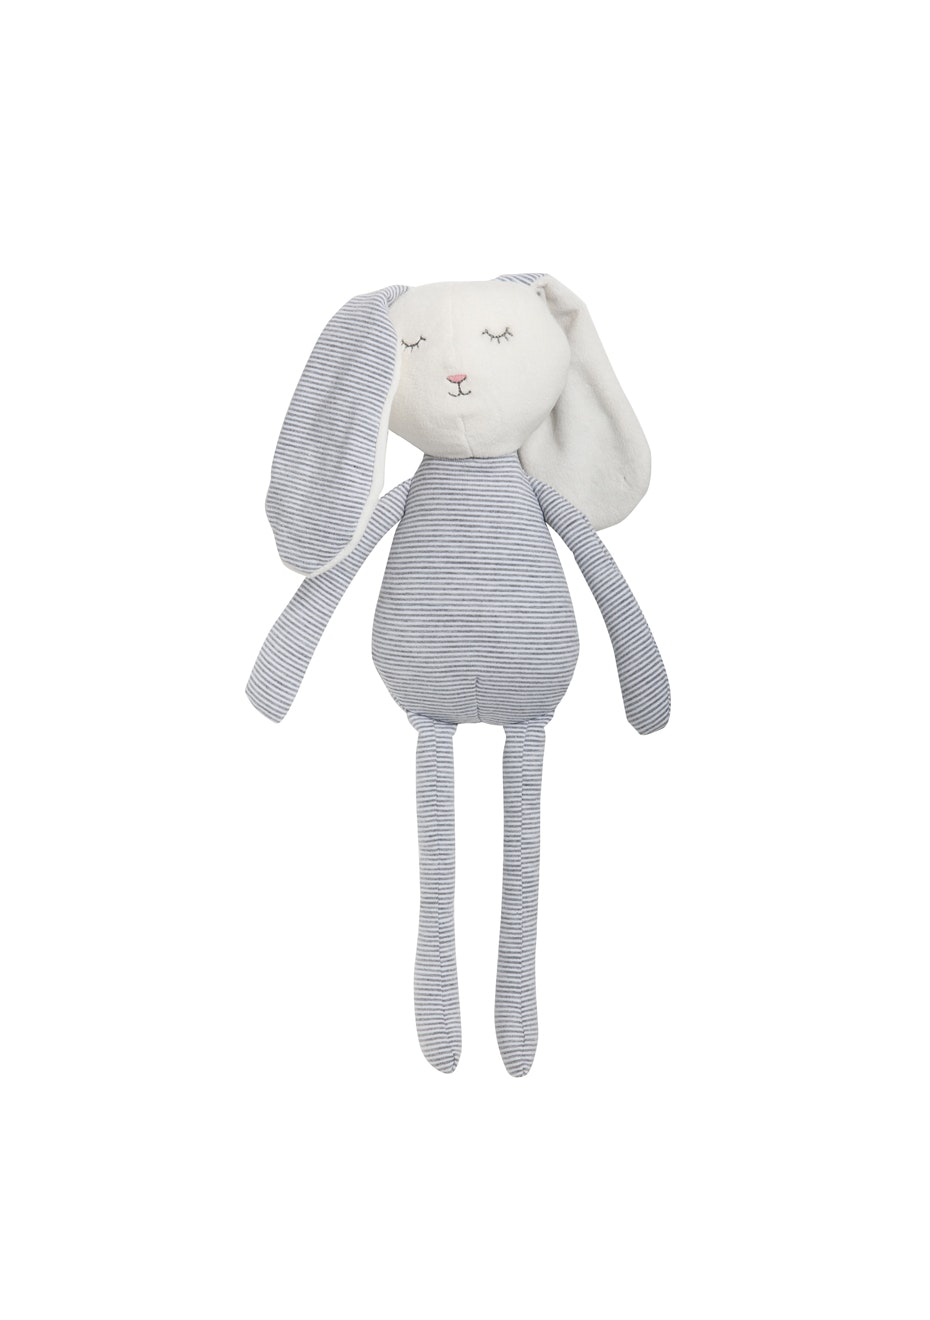 Lily & George - Nap Time Bunny Toy